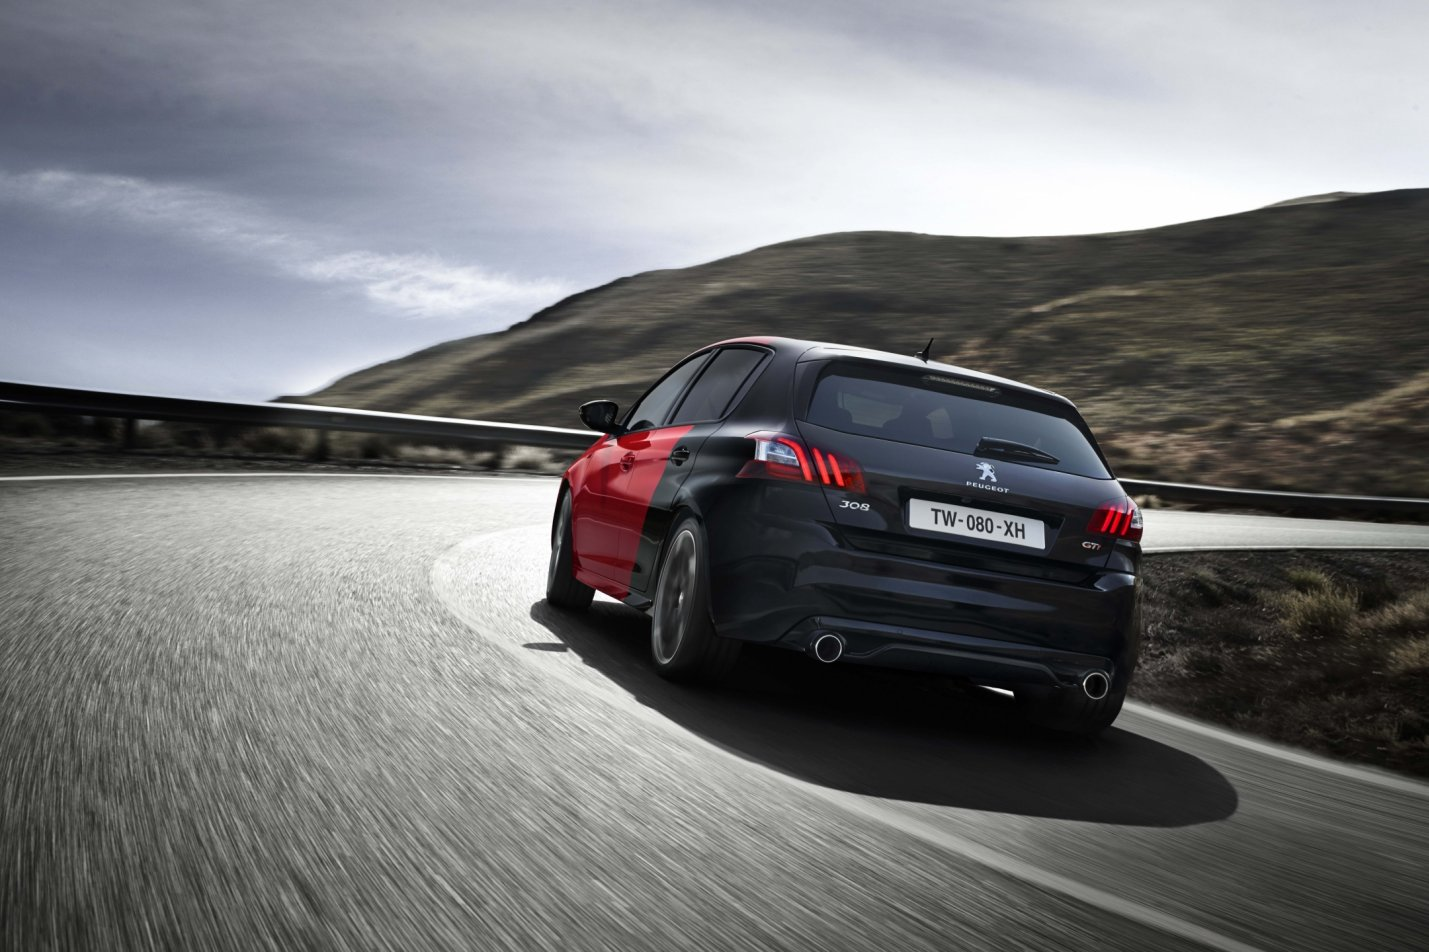 peugeot presenteert 308 gti in twee varianten drivessential. Black Bedroom Furniture Sets. Home Design Ideas